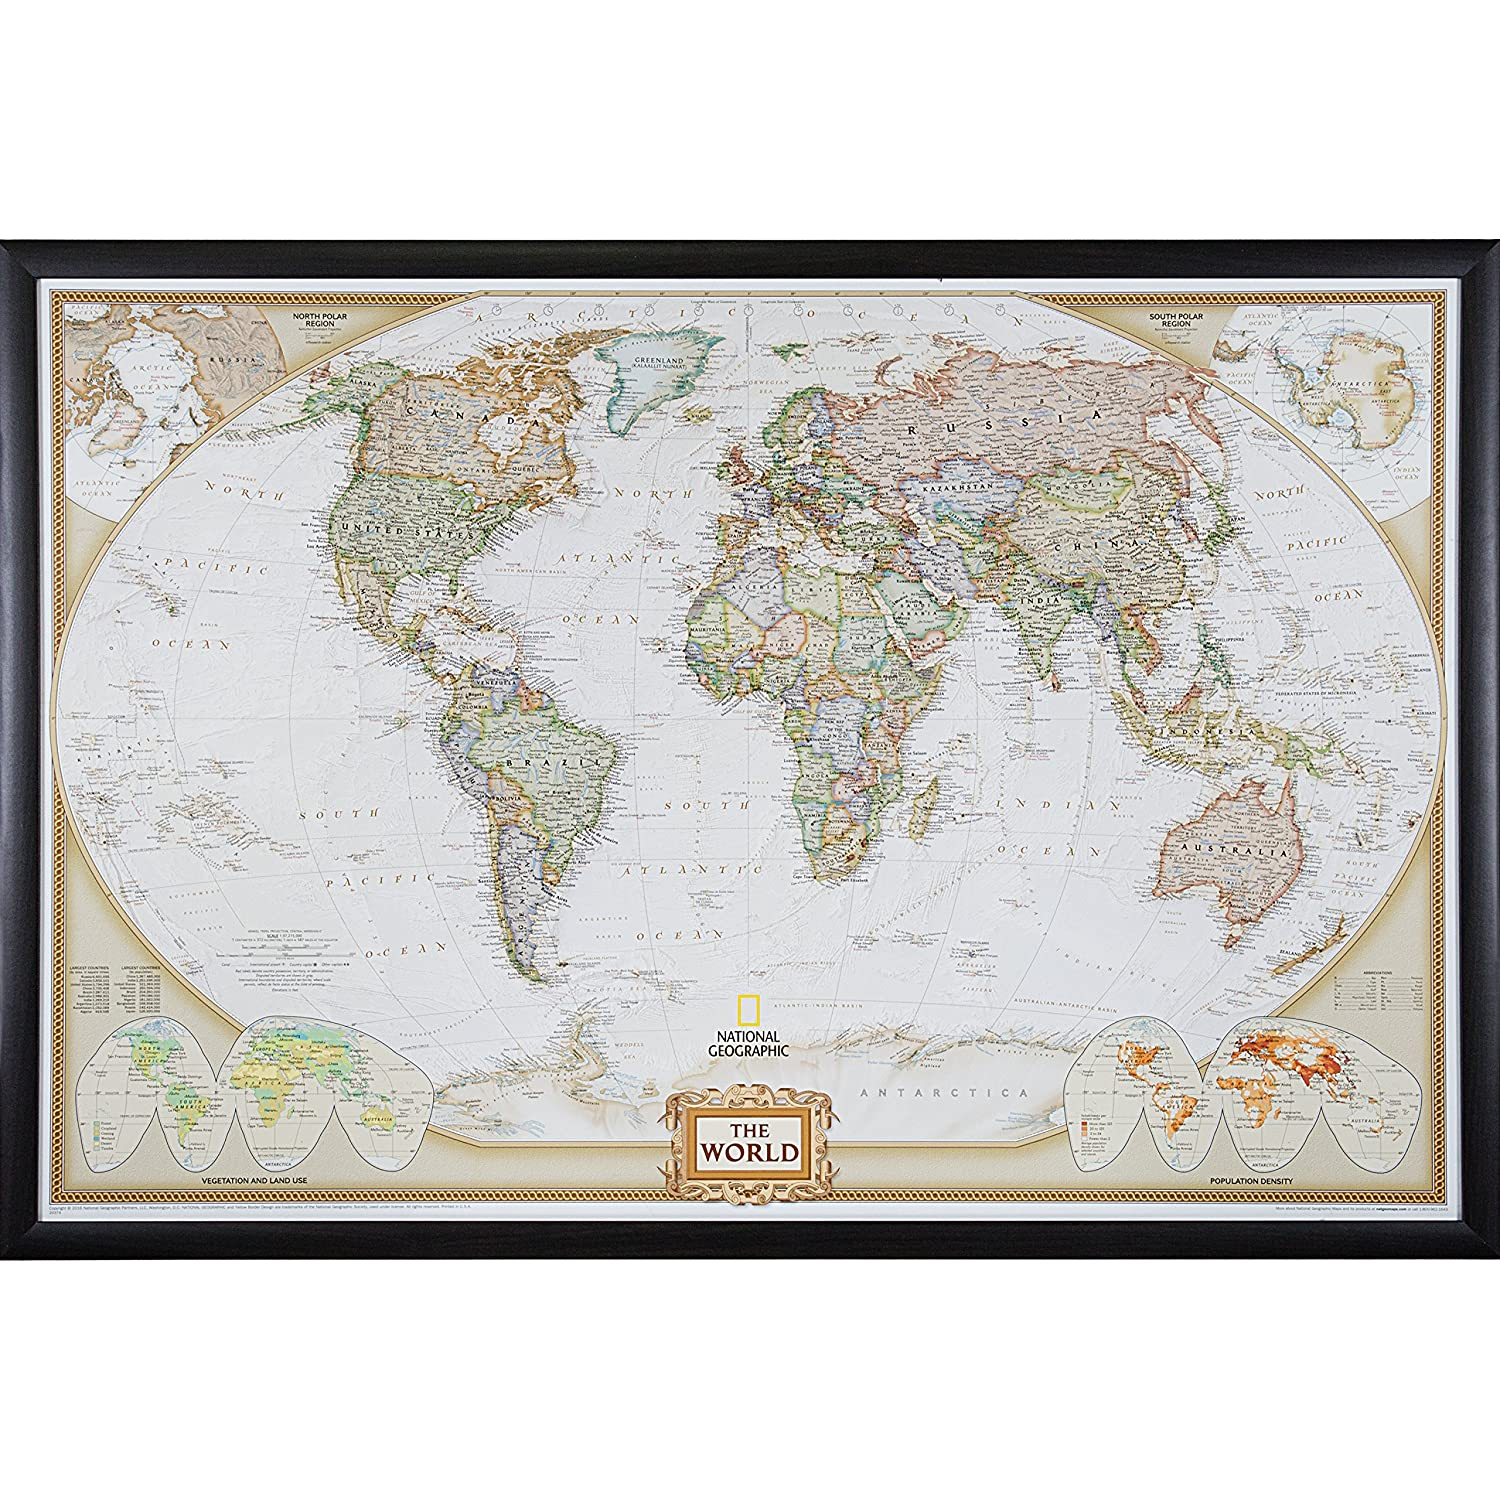 Amazon craig frames wayfarer executive world push pin travel amazon craig frames wayfarer executive world push pin travel map brazilian walnut frame and pins 24 by 36 inch wall art gumiabroncs Image collections